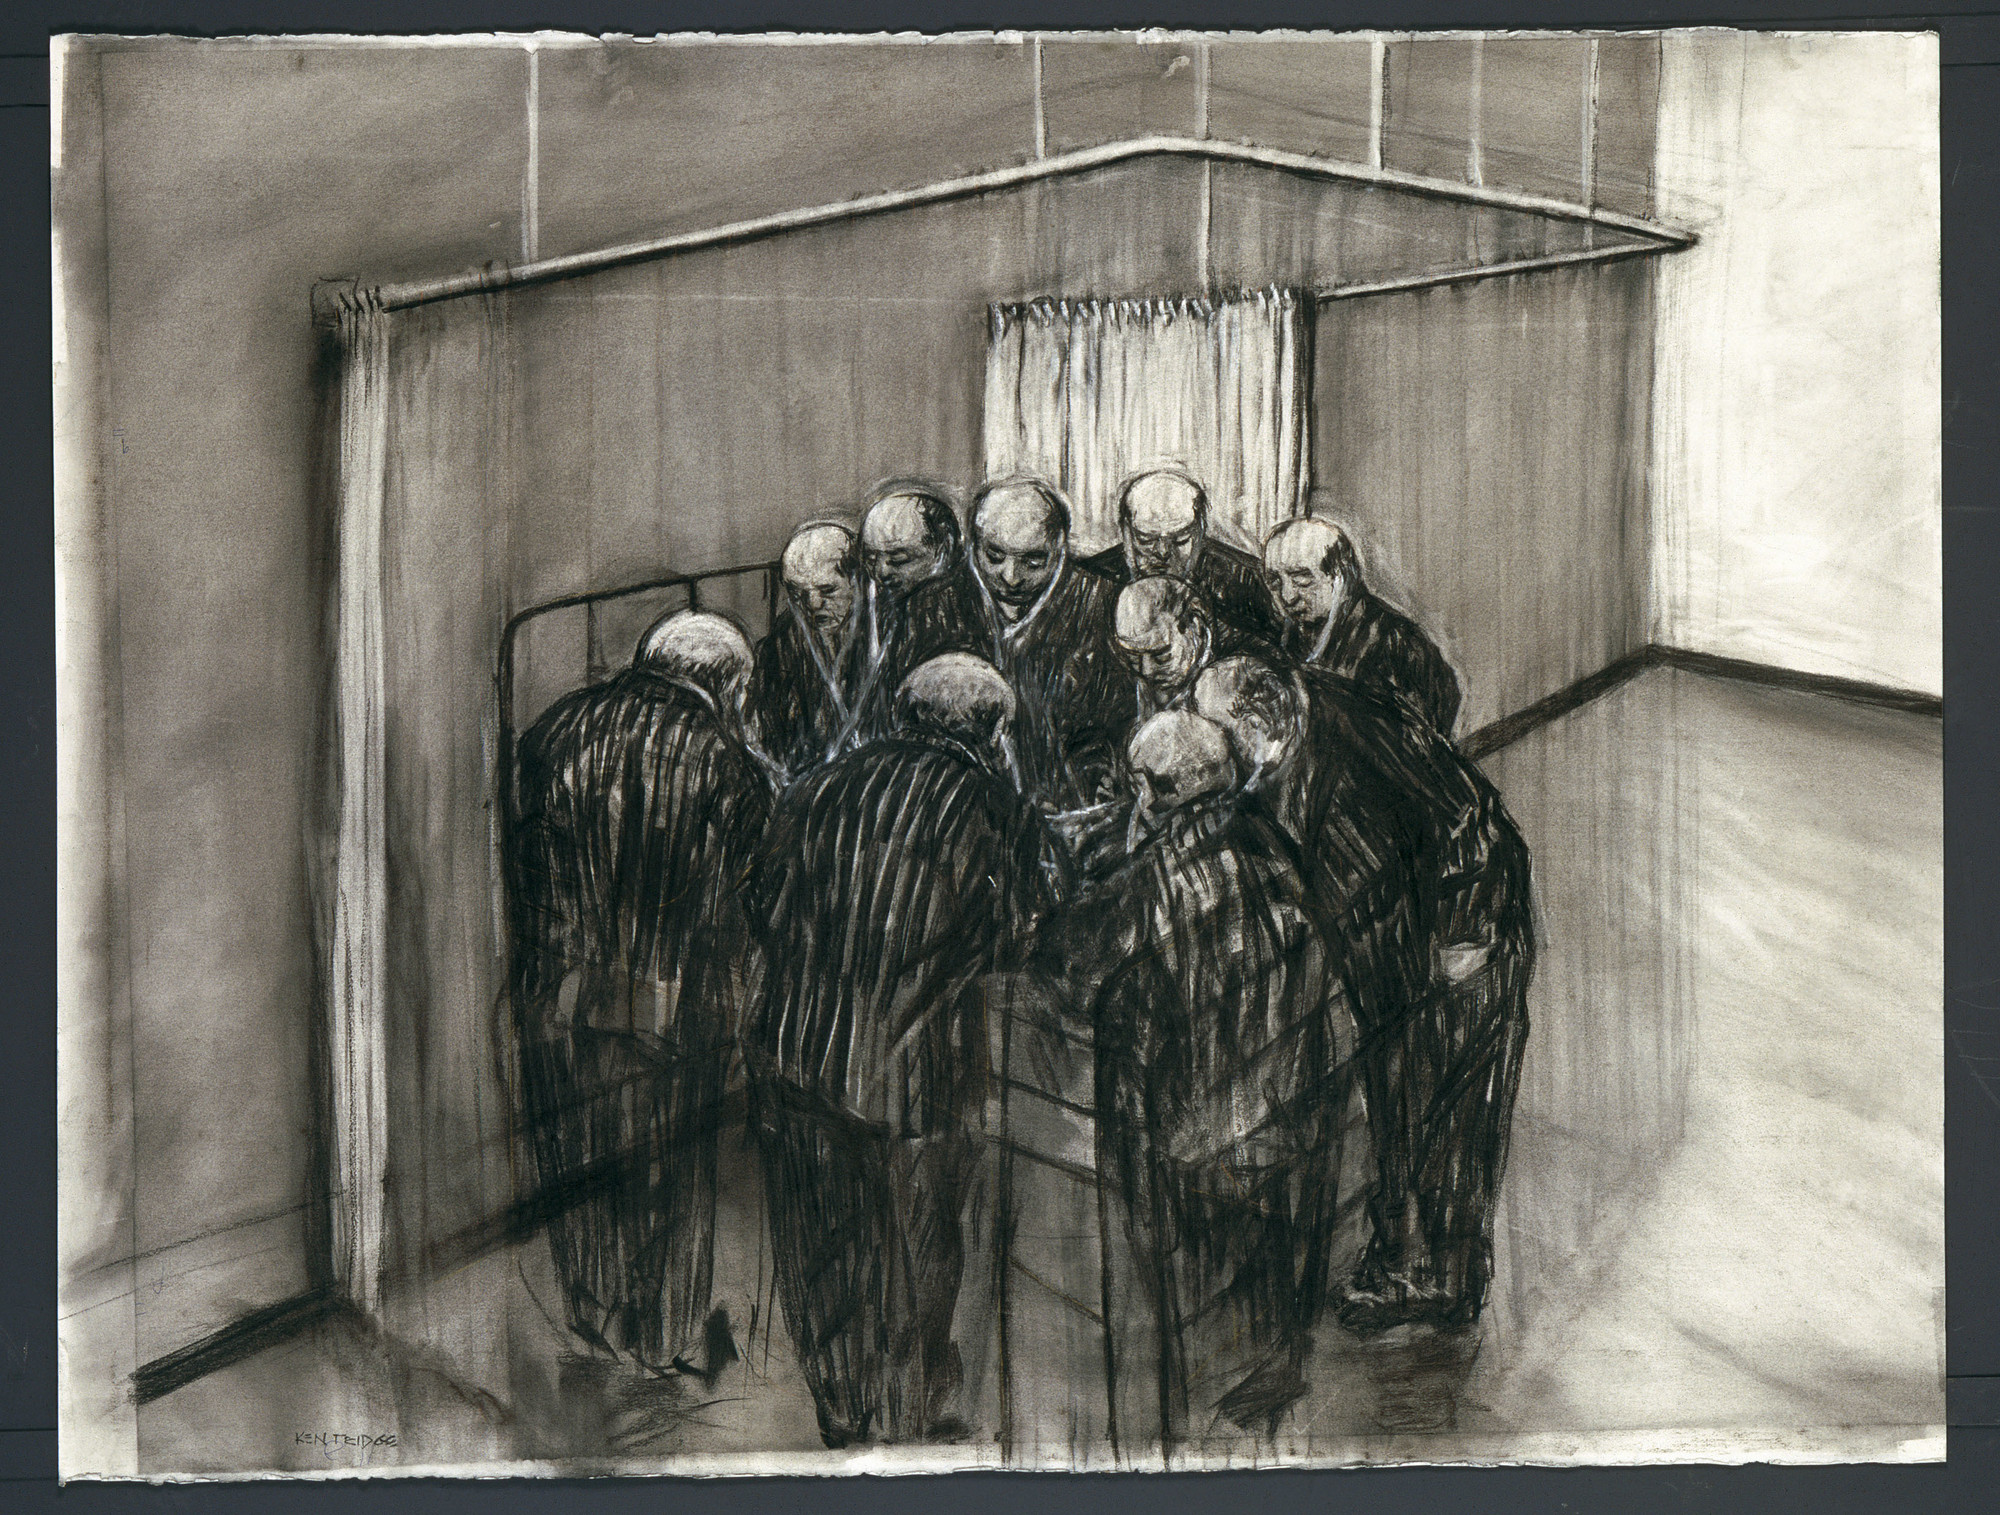 William Kentridge. History of the Main Complaint. 1996